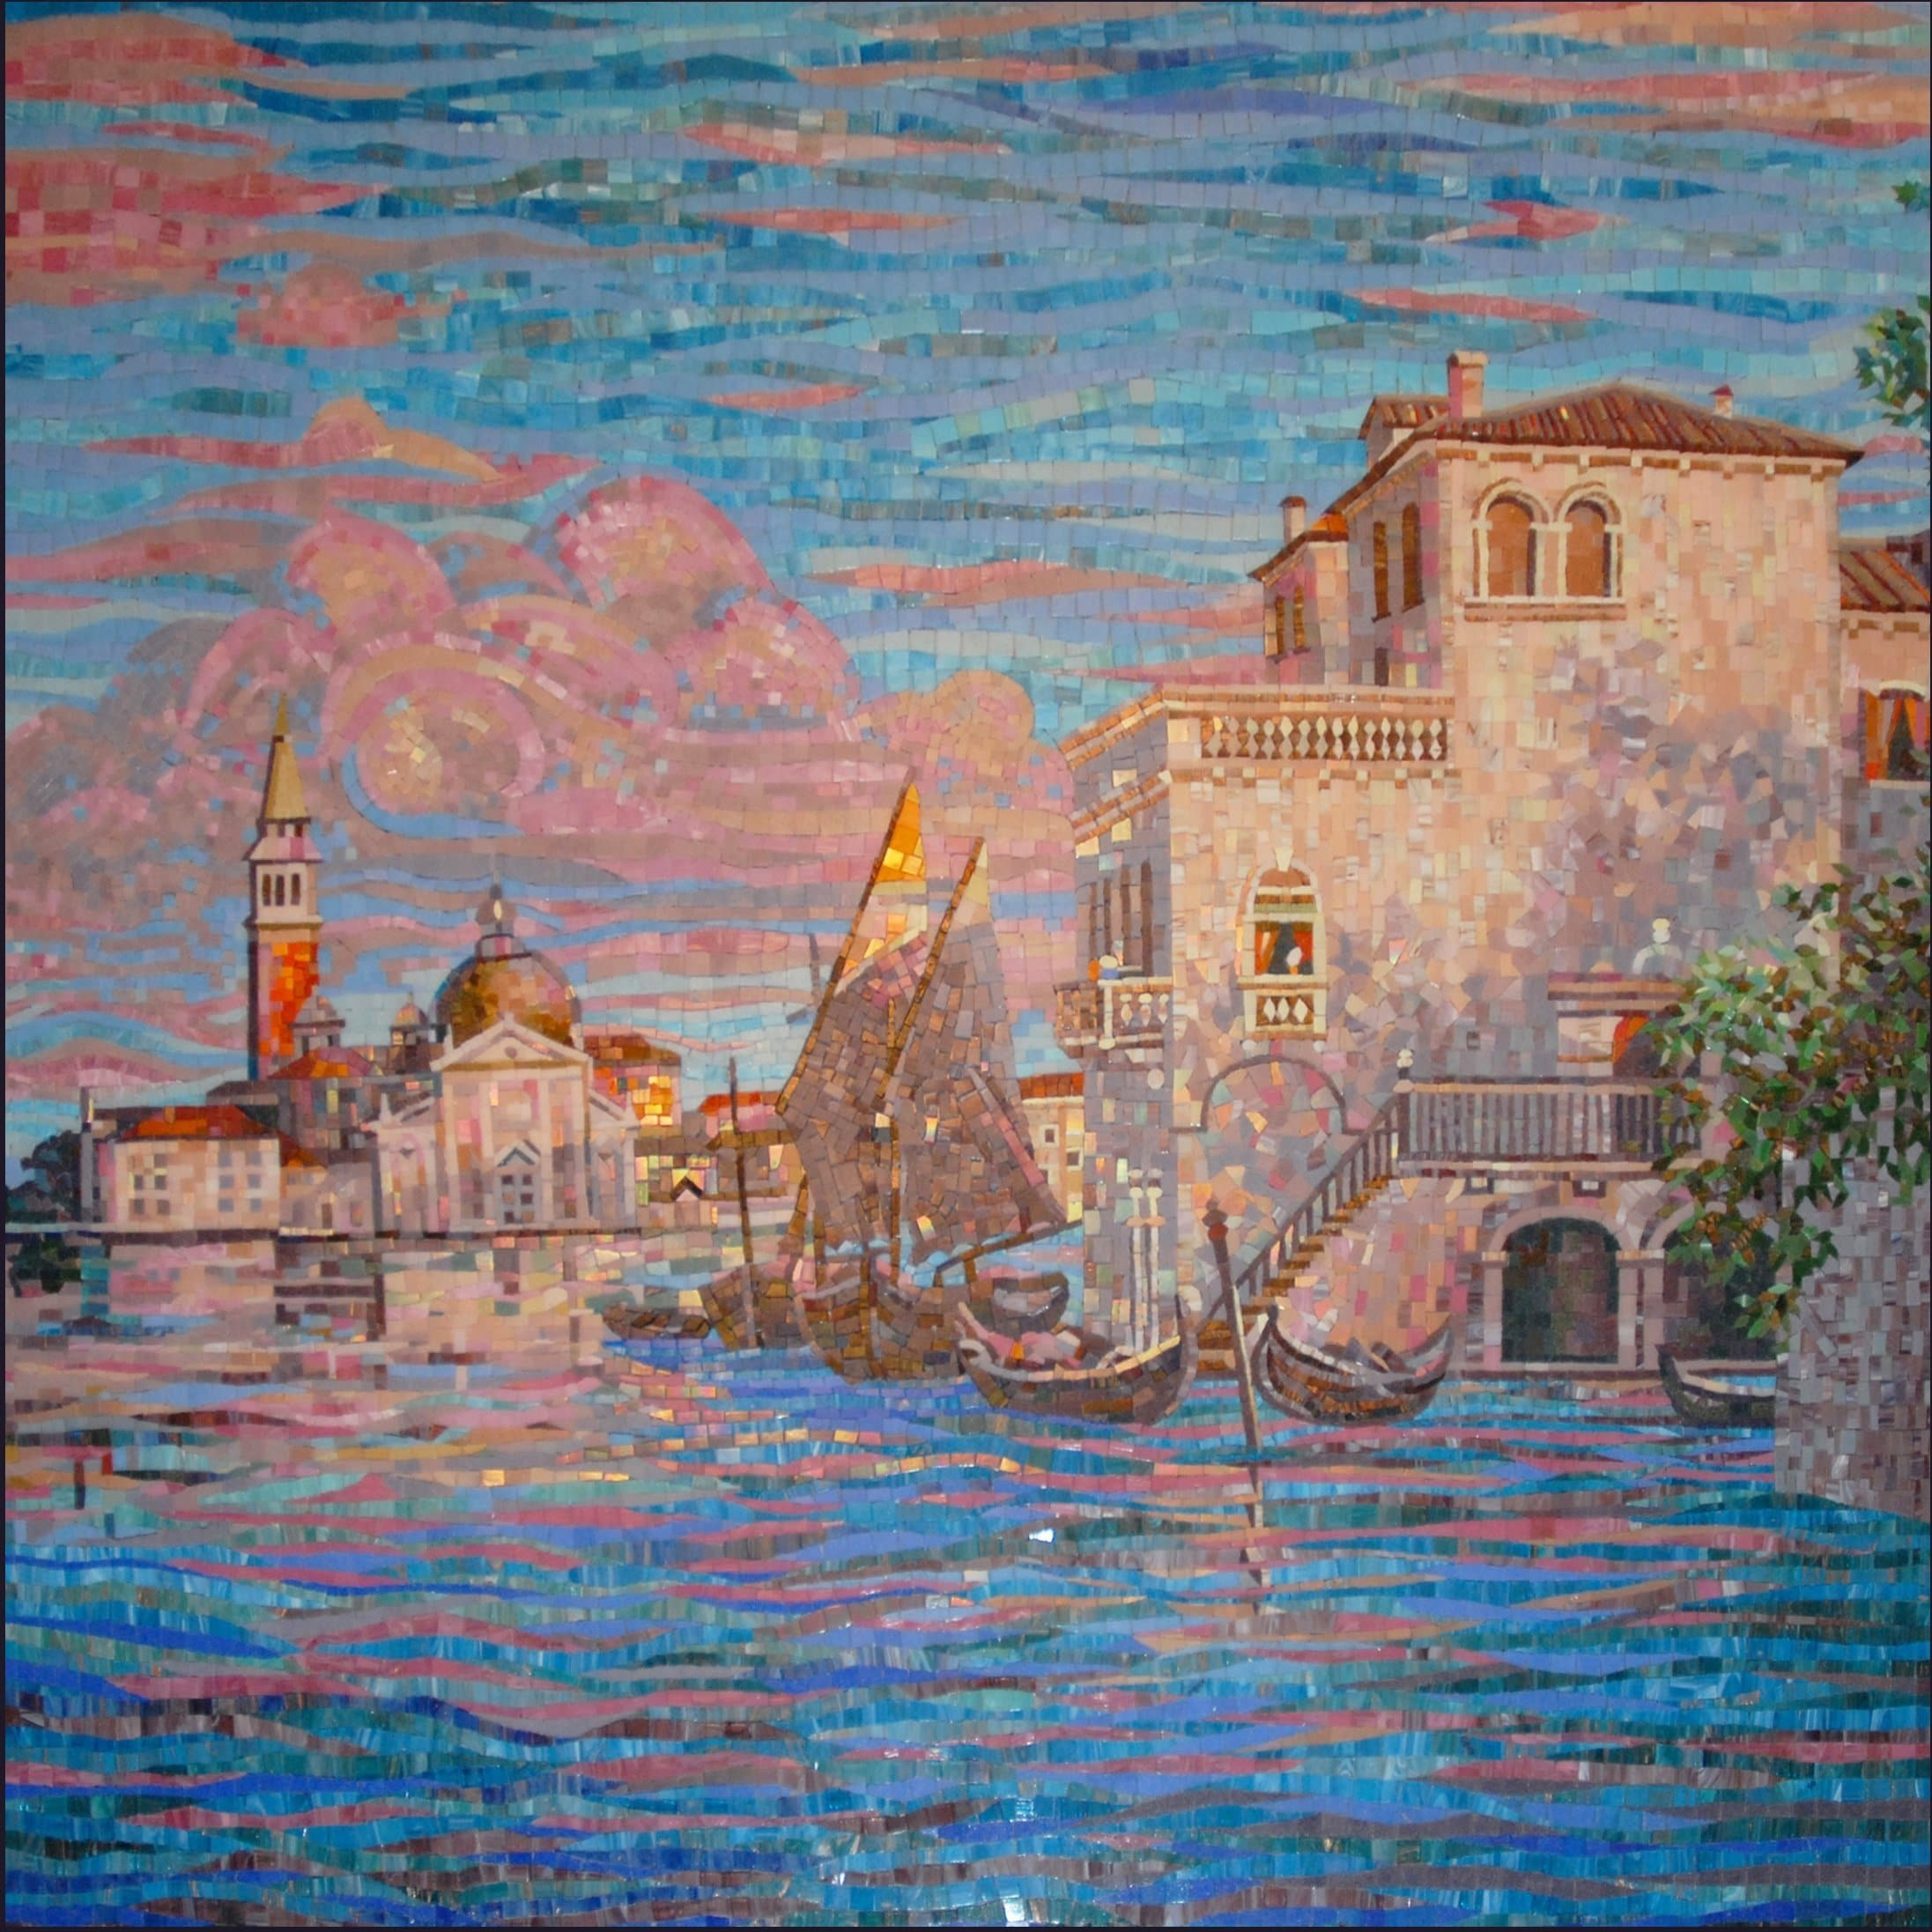 Mosaic Design Scenes From A Venetian Canal Pic